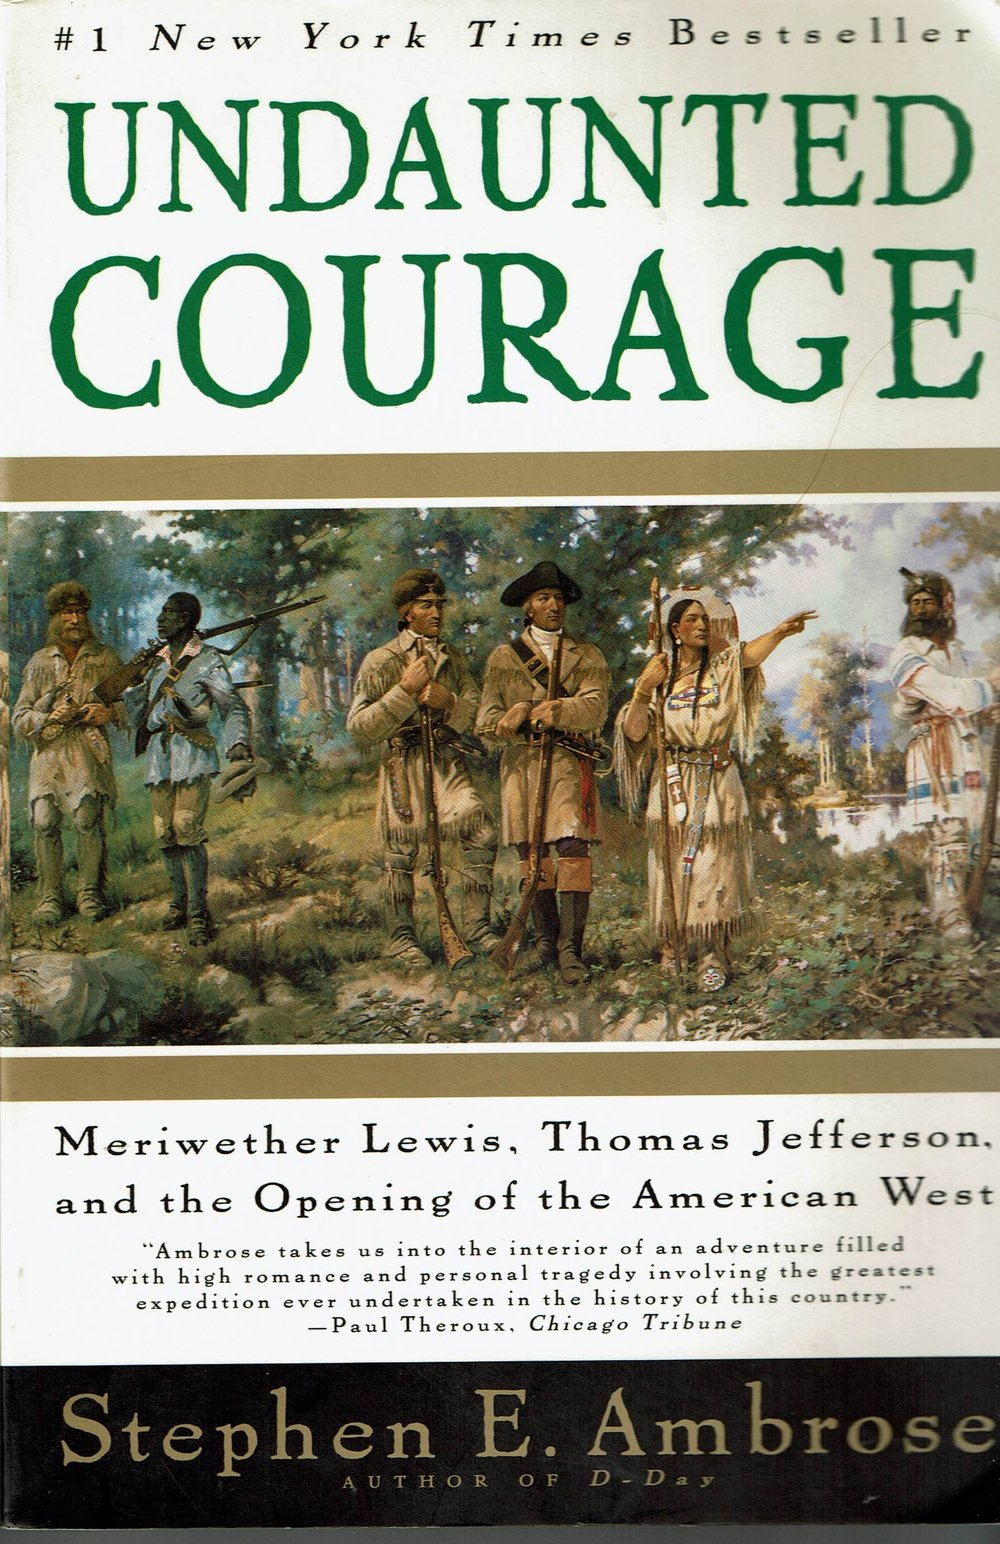 Stephen E. Ambrose. UNDAUNTED COURAGE Published in 1997 and 2003